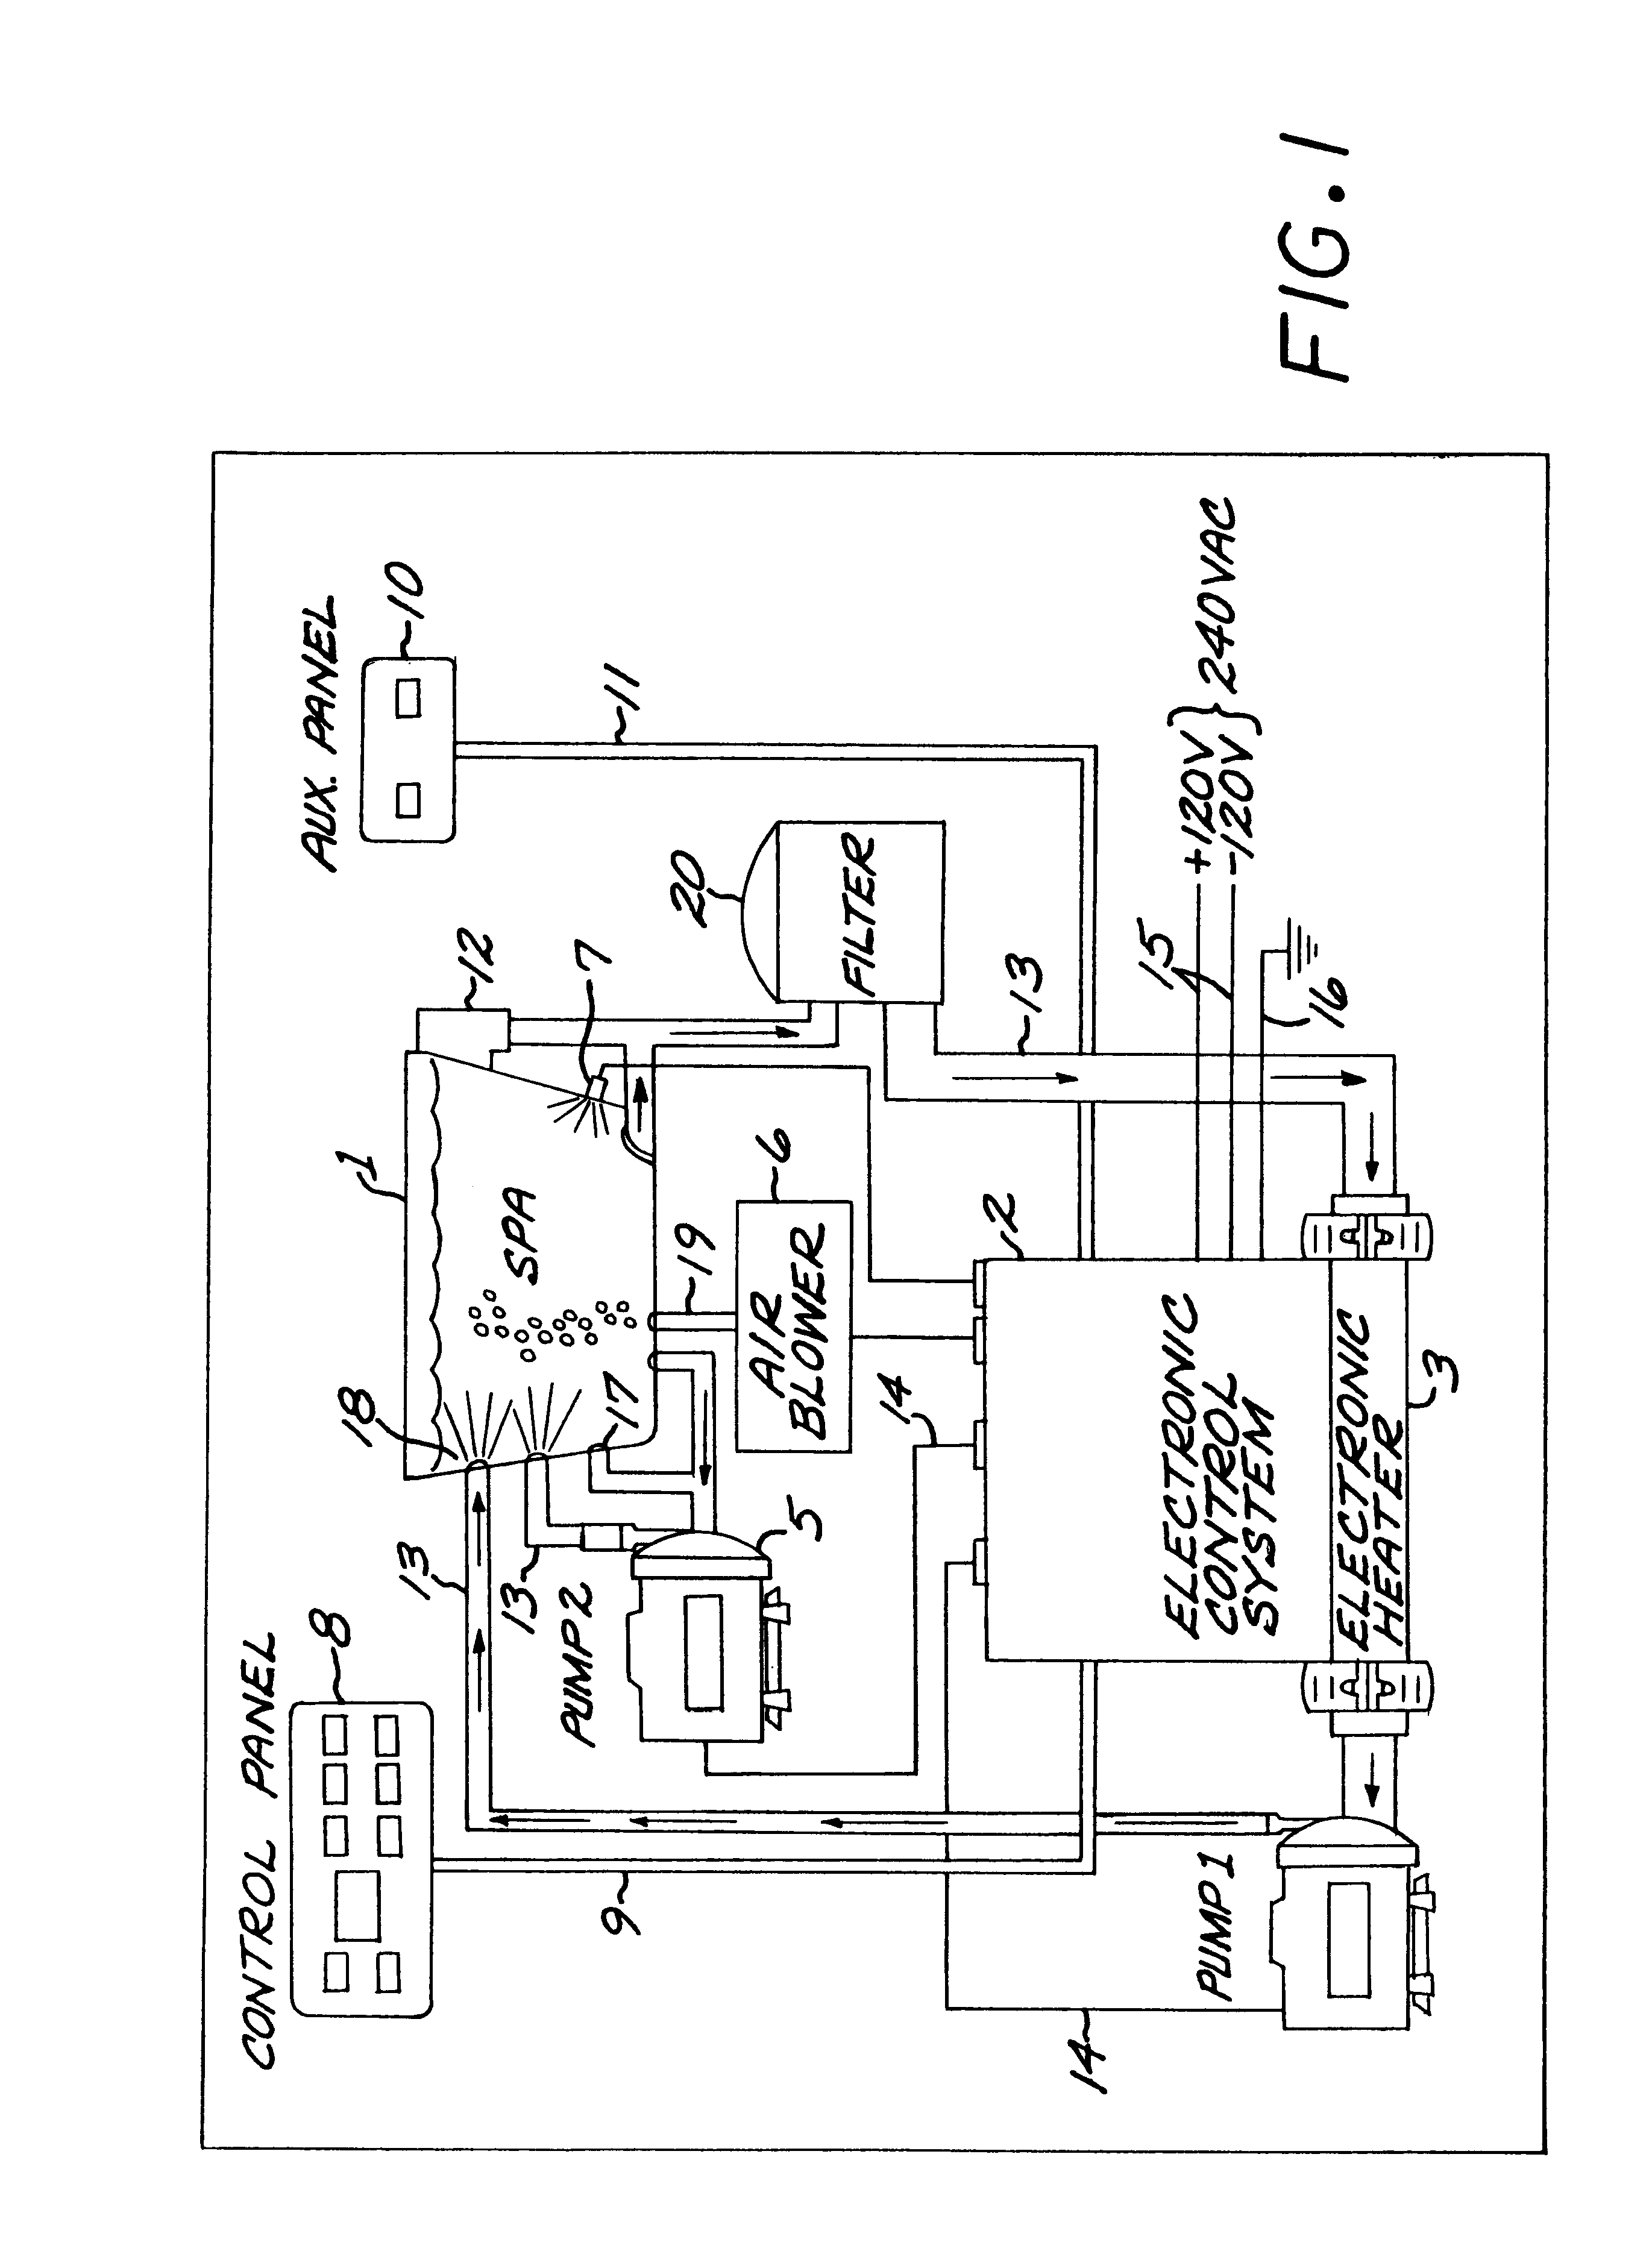 US06253121 20010626 D00001 patent us6253121 control system for bathers with ground thermospa wiring diagram at crackthecode.co